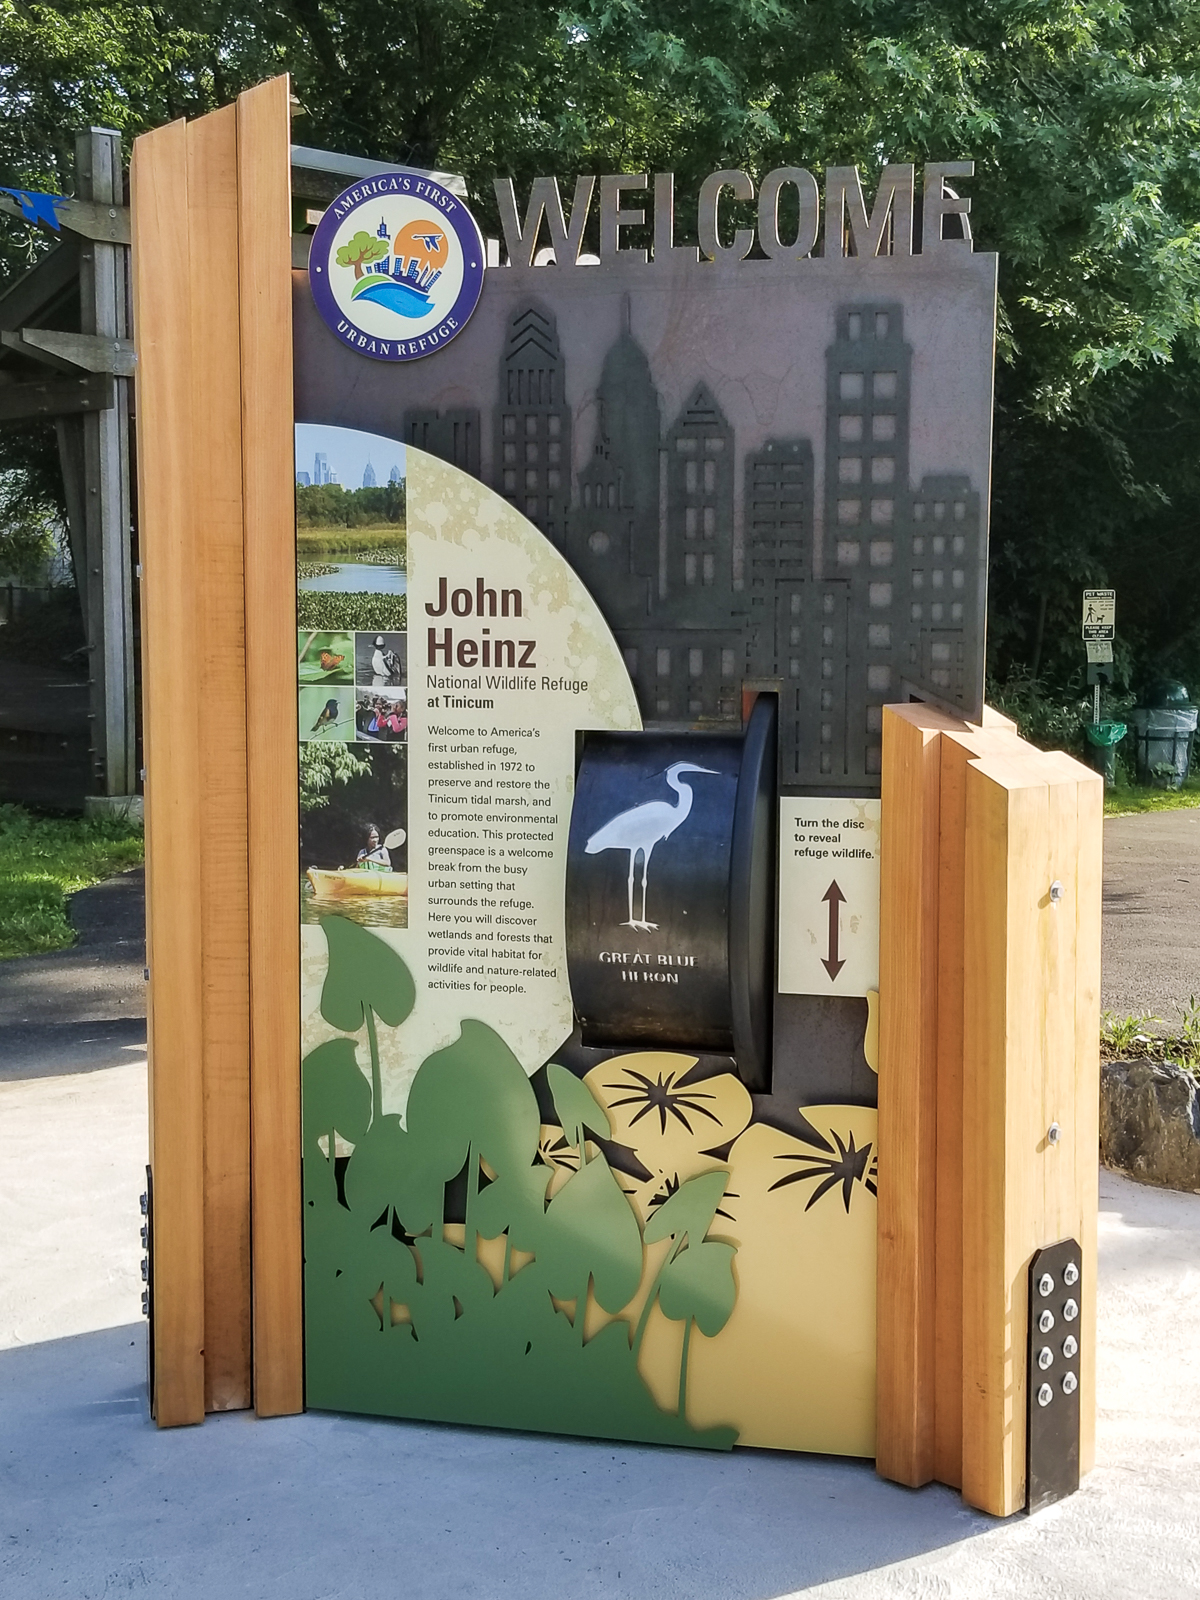 This three-sided outdoor welcome structure includes cut metal, graphics, and interactives.